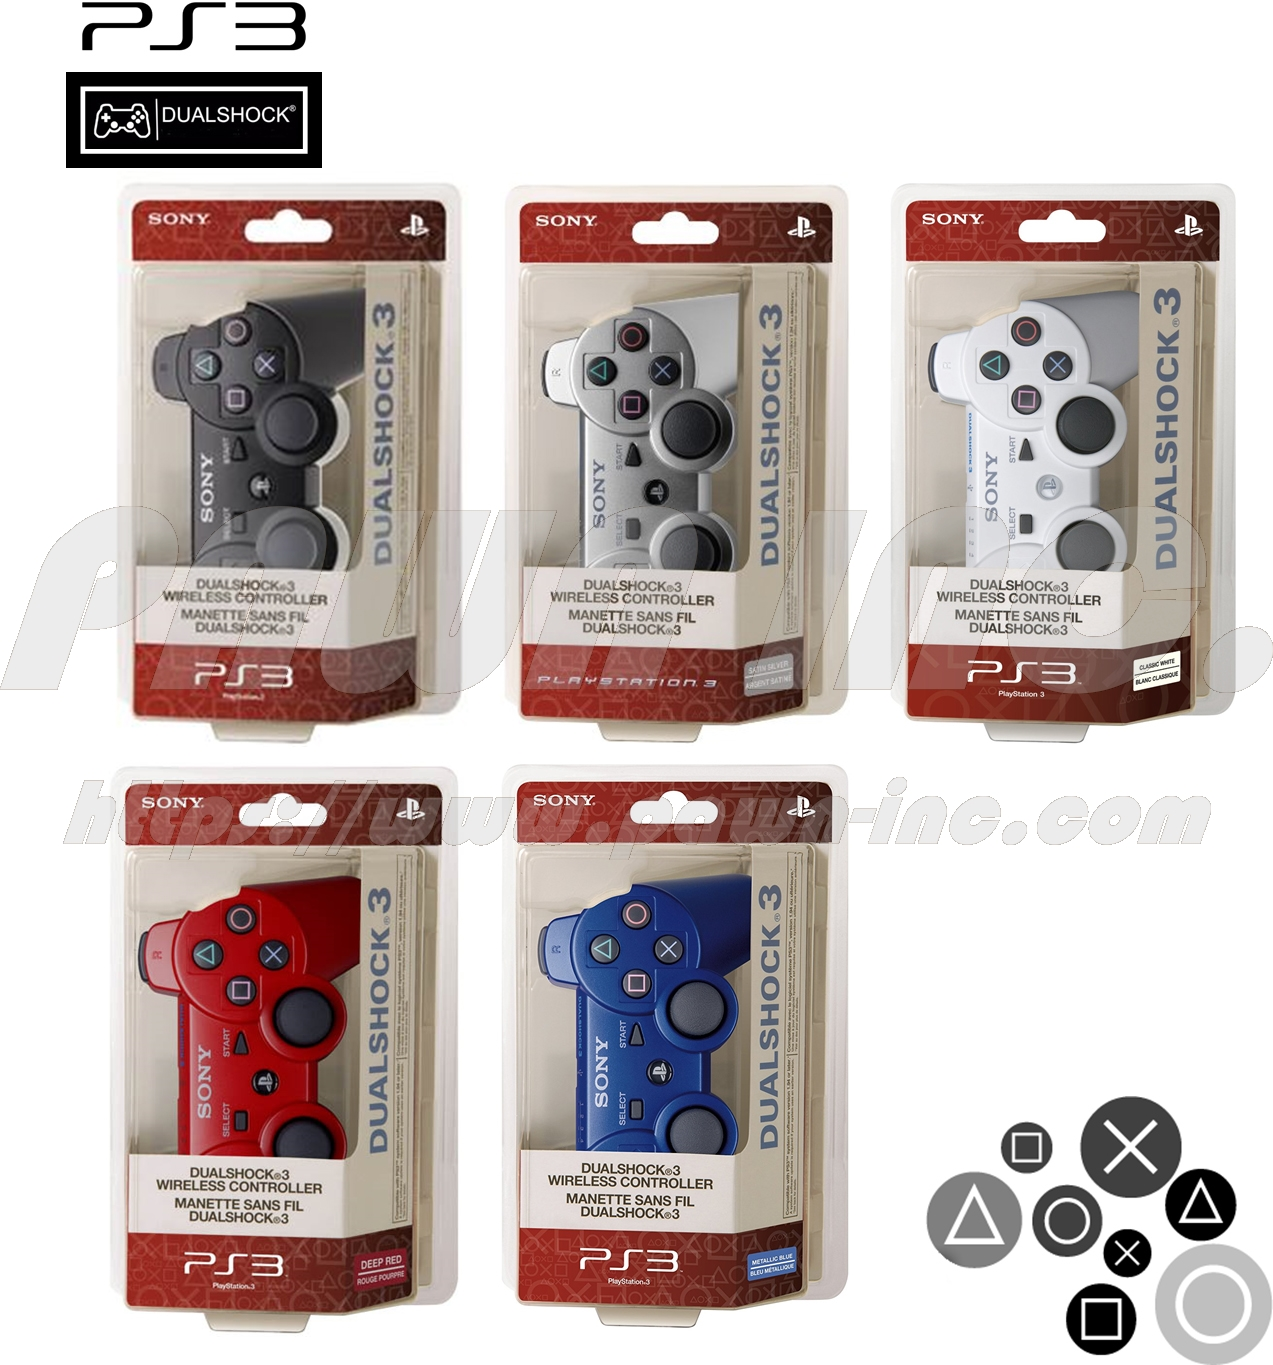 PS3 Dual Shock 3 Wireless Controller